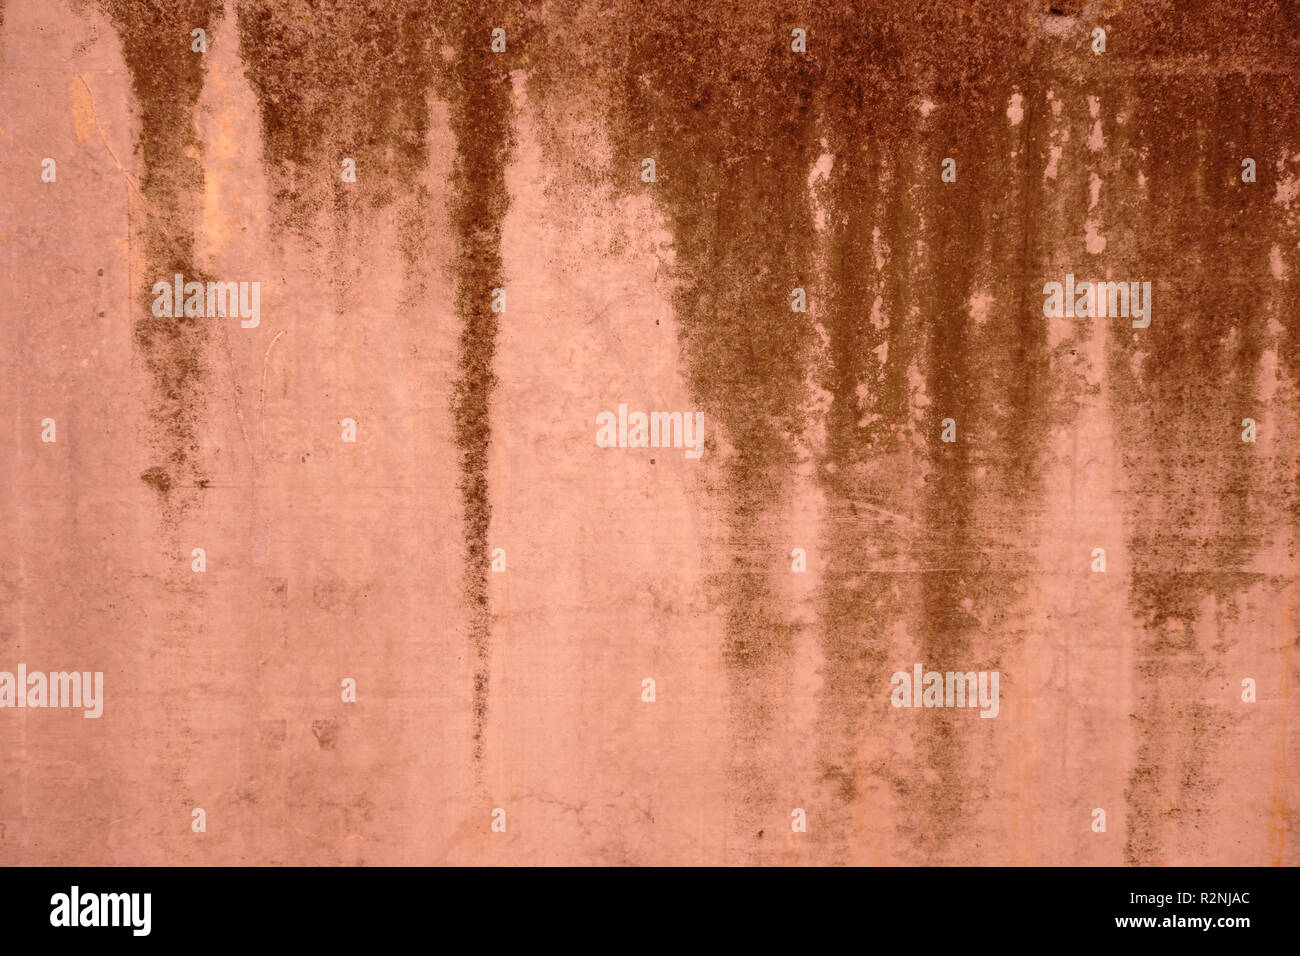 Close-up of green algae and plant remains as well as runny traces of water on the surface of a wall, - Stock Image